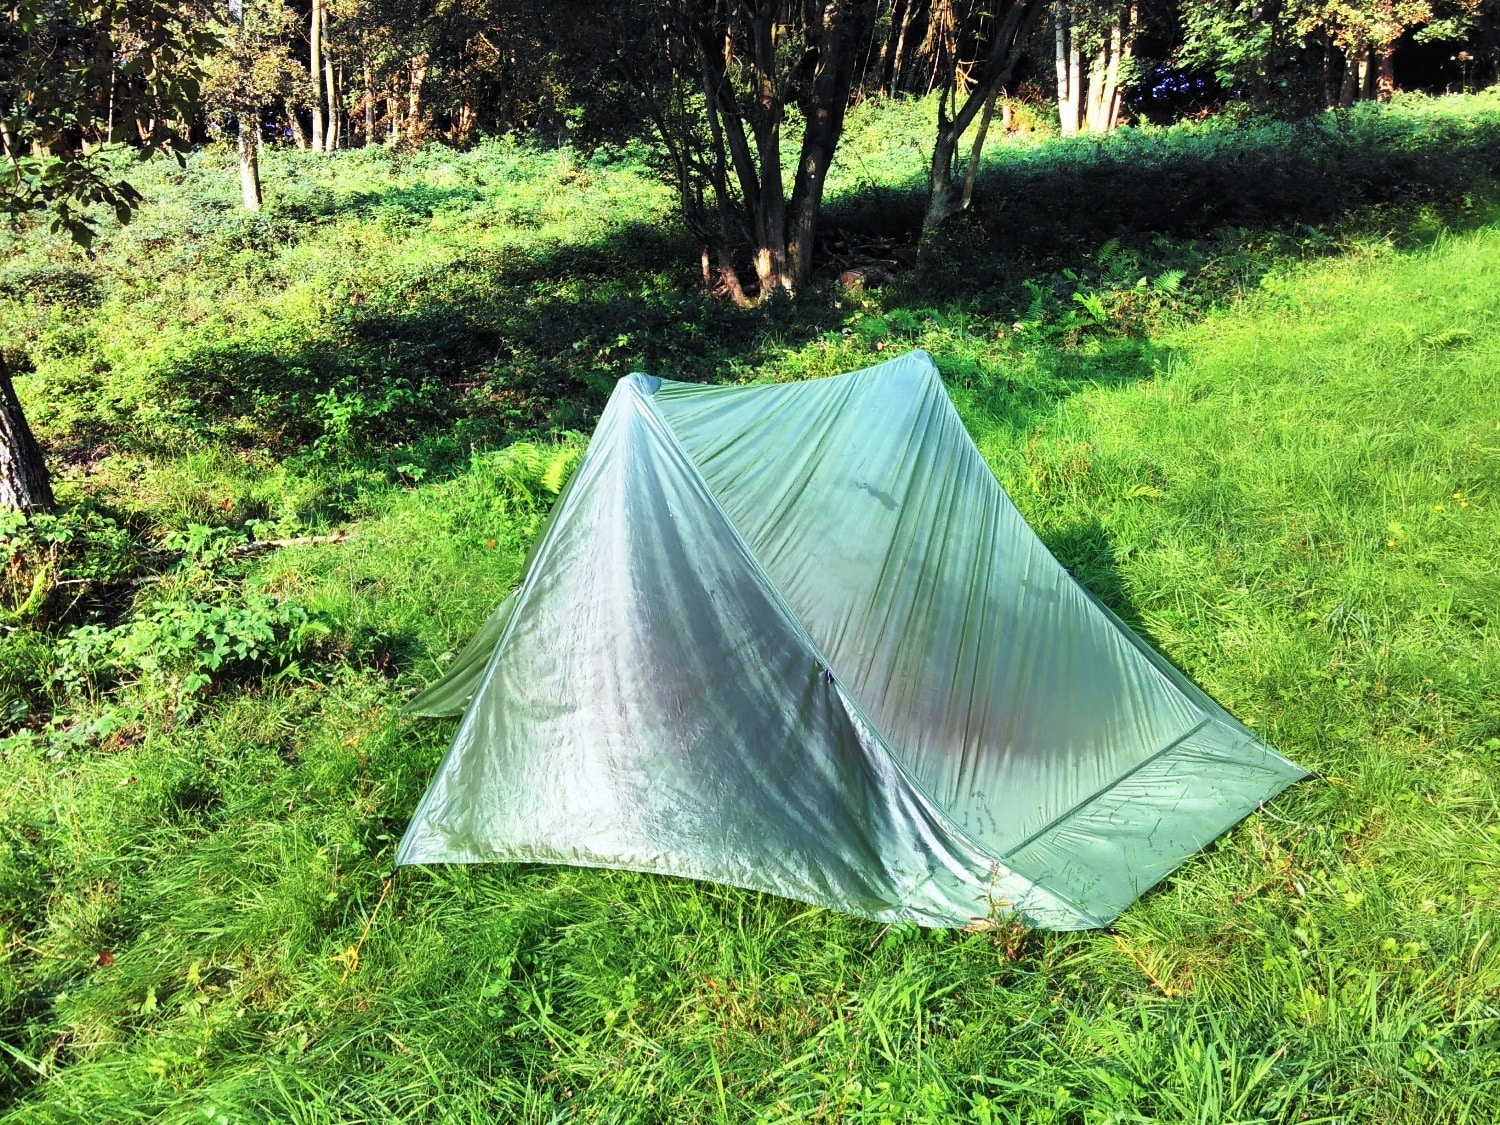 Rheinsteig Stage 2 - My tent in the morning